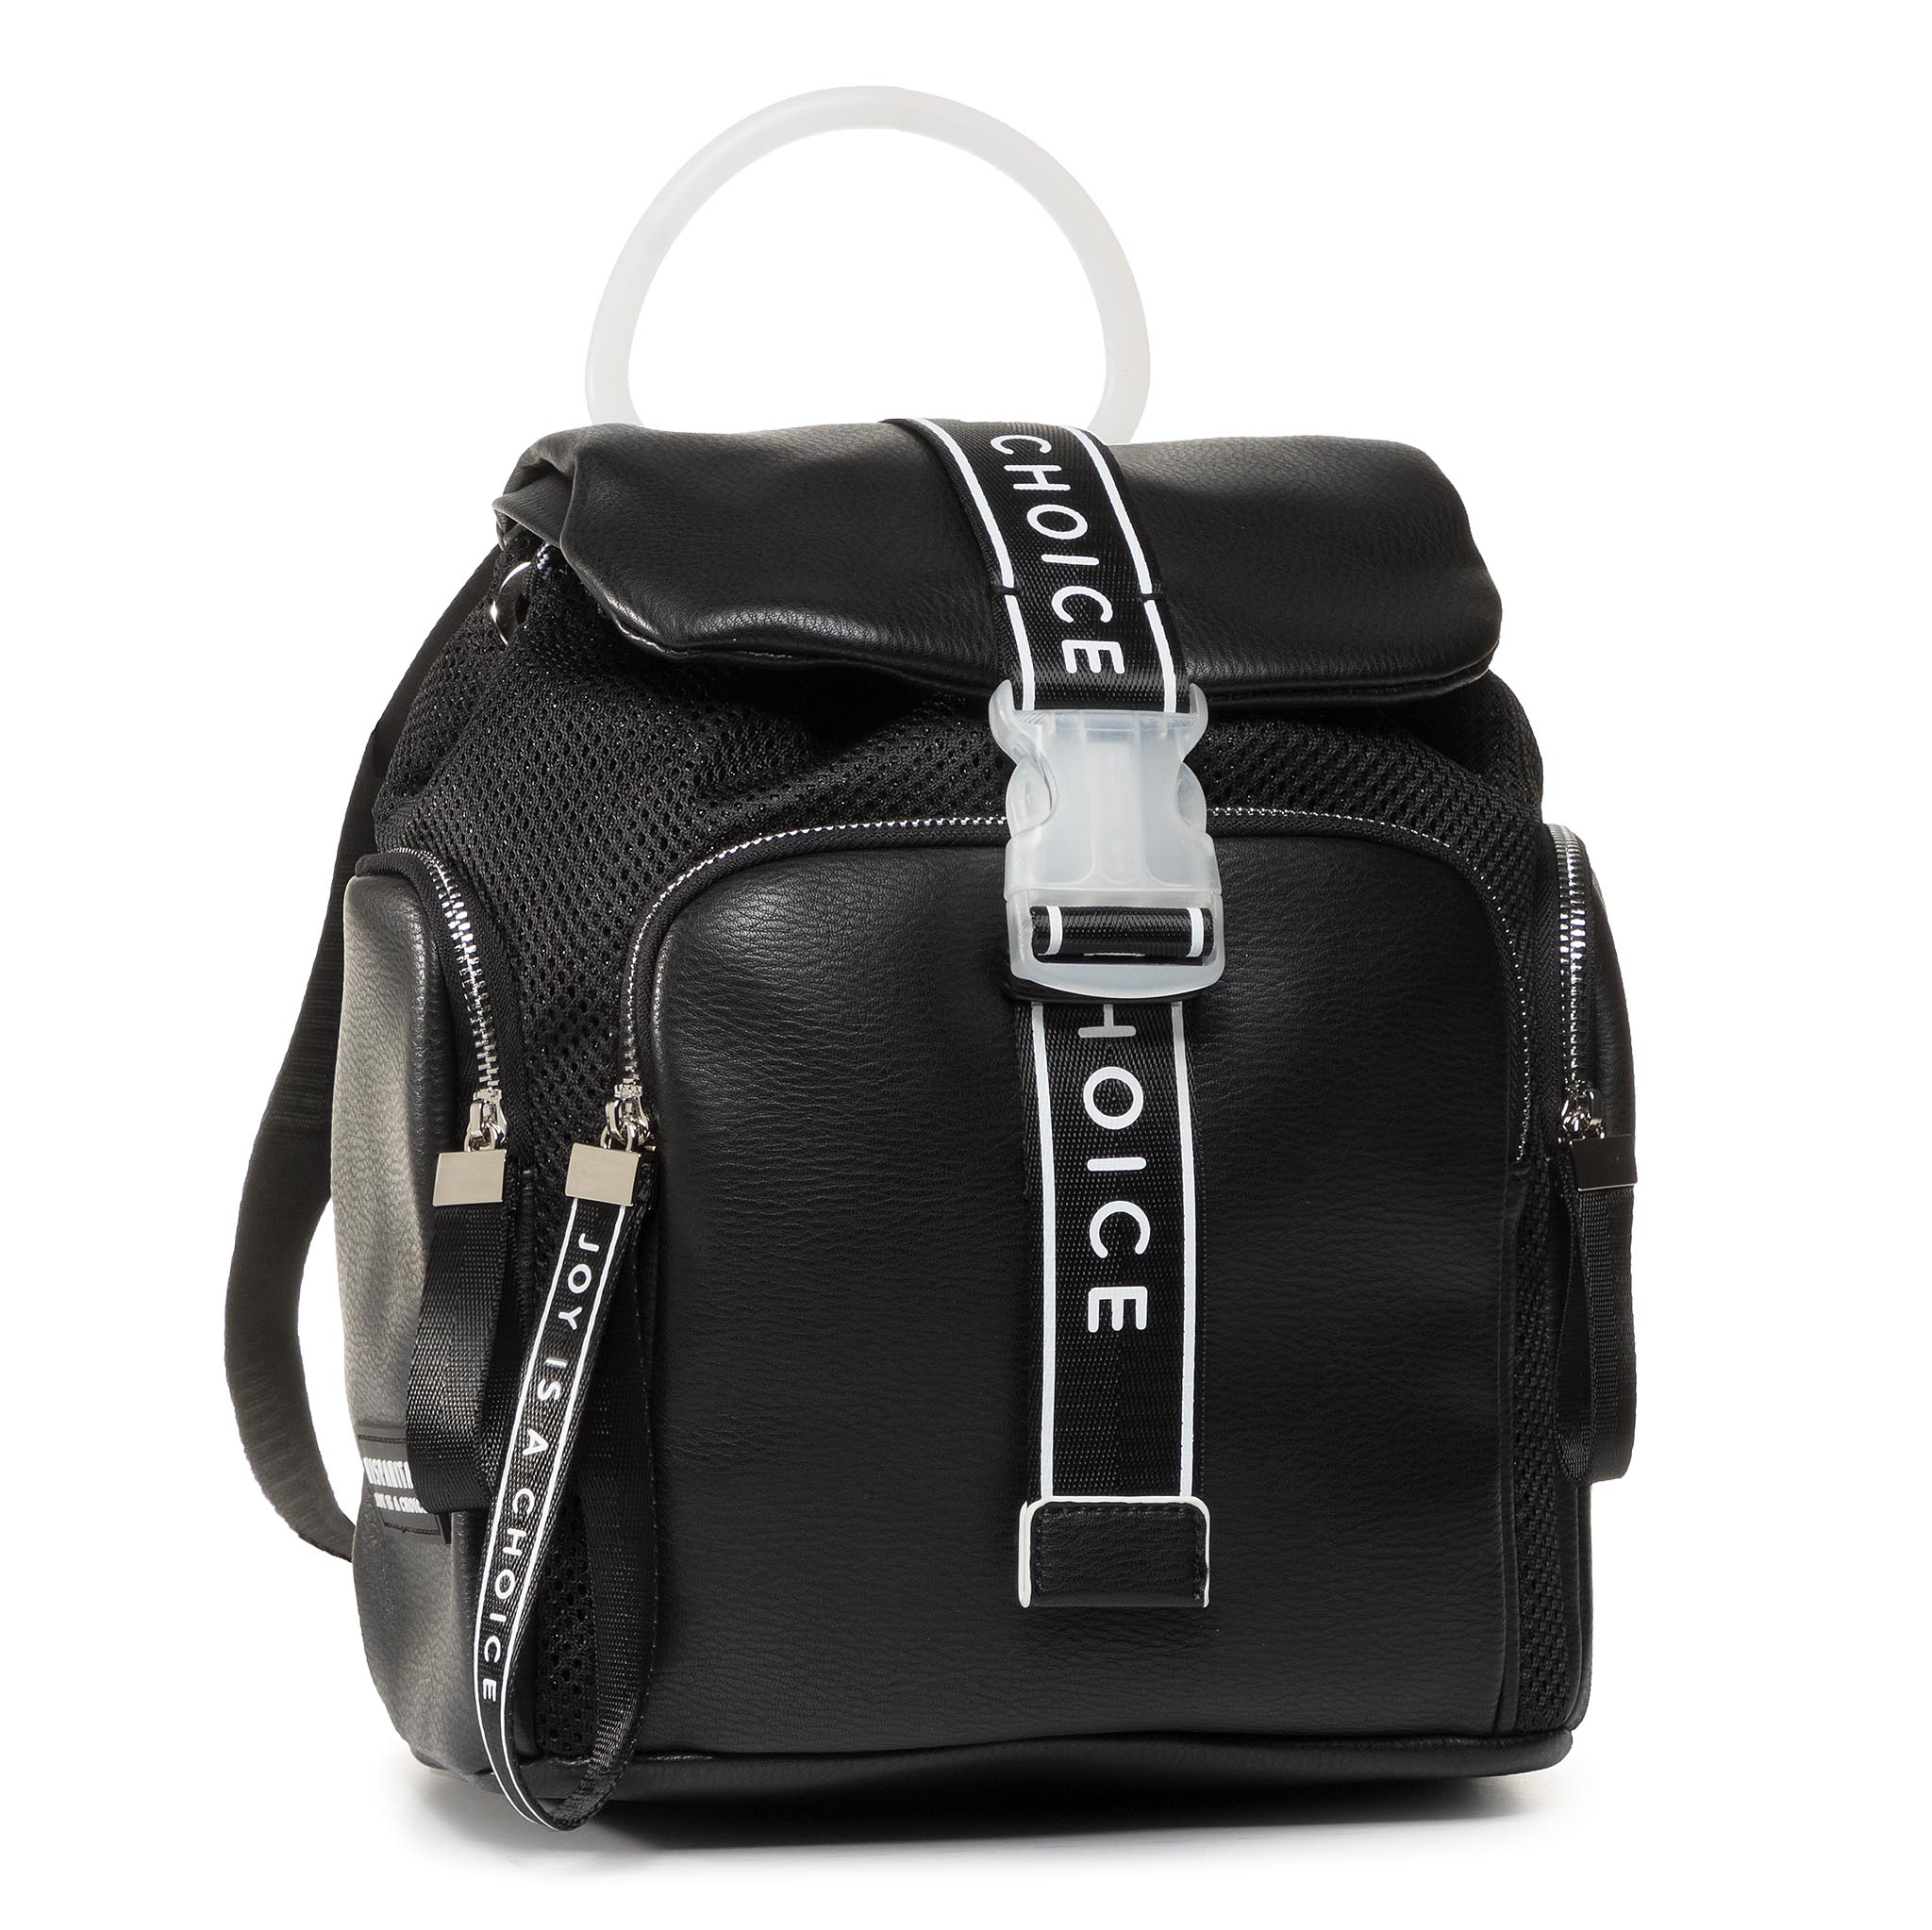 Rucsac HISPANITAS - BV09908 Black